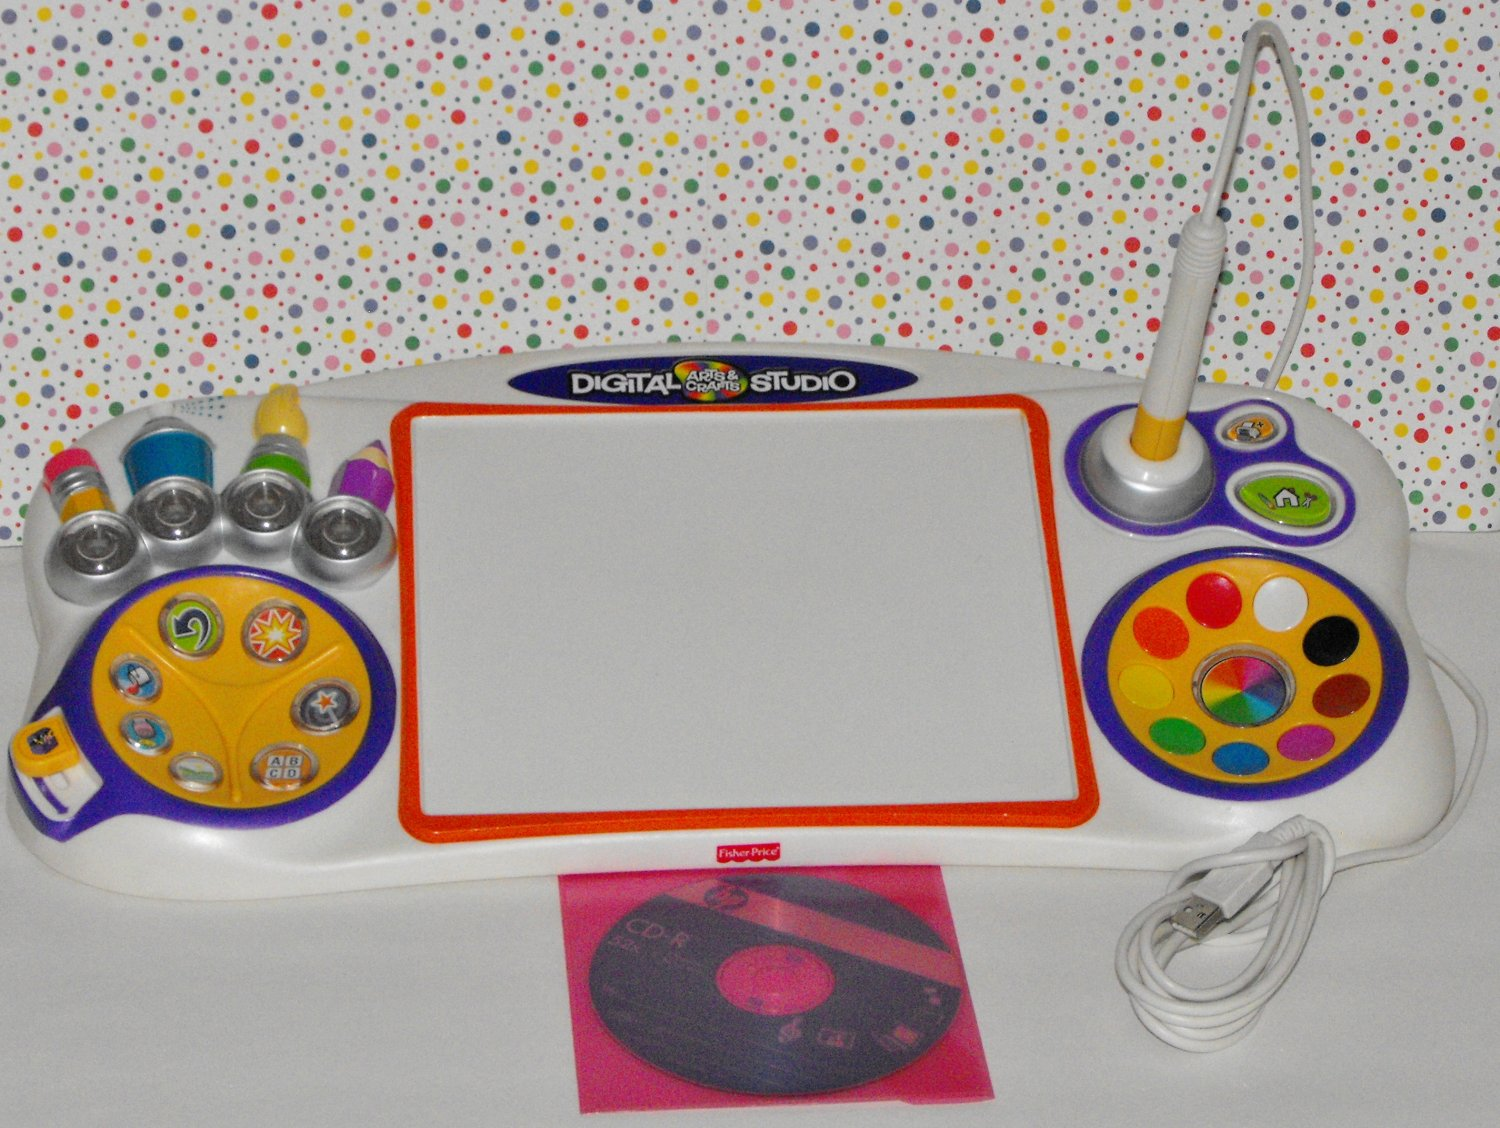 1 sold fisher price digital arts and crafts computer studio for Fisher price digital arts crafts studio